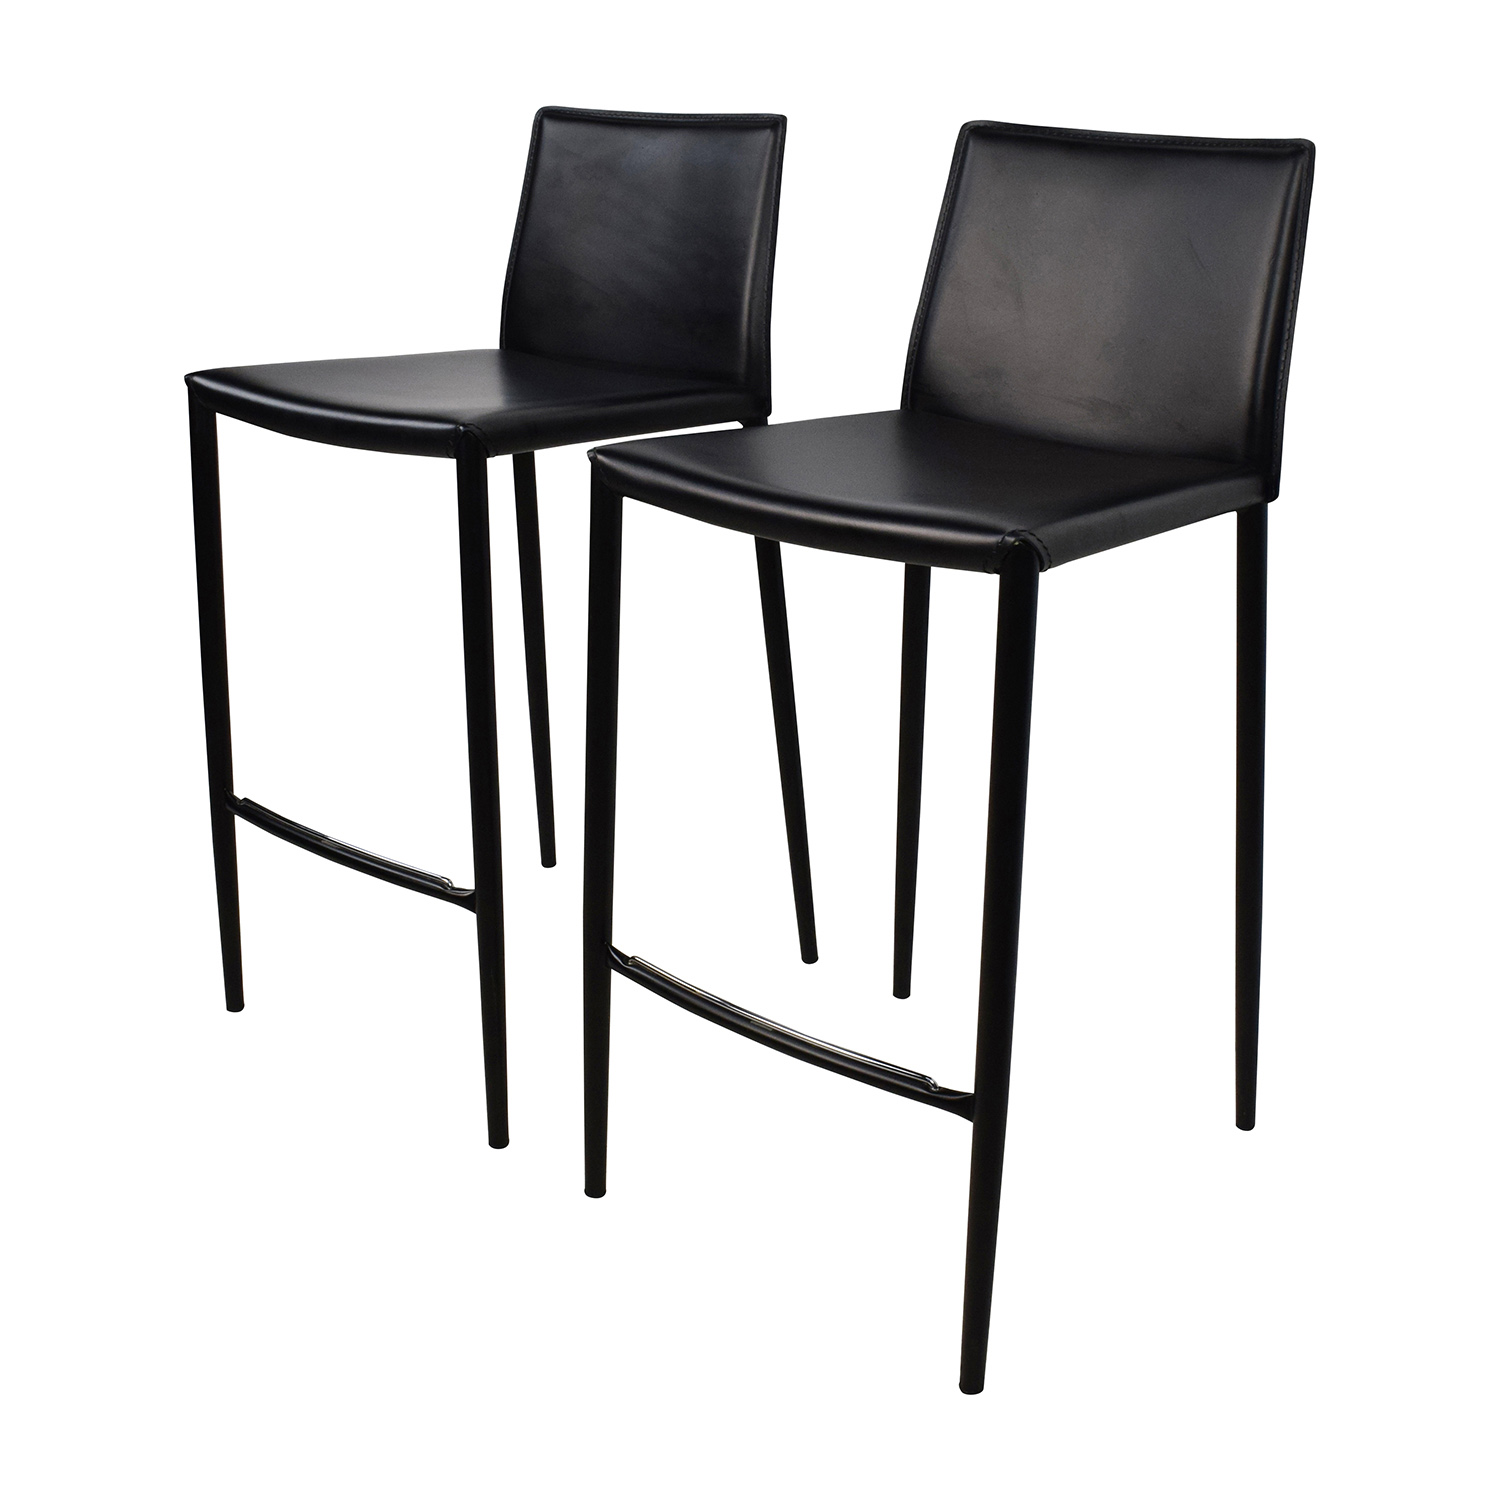 80 off calligaris calligaris boheme black leather bar